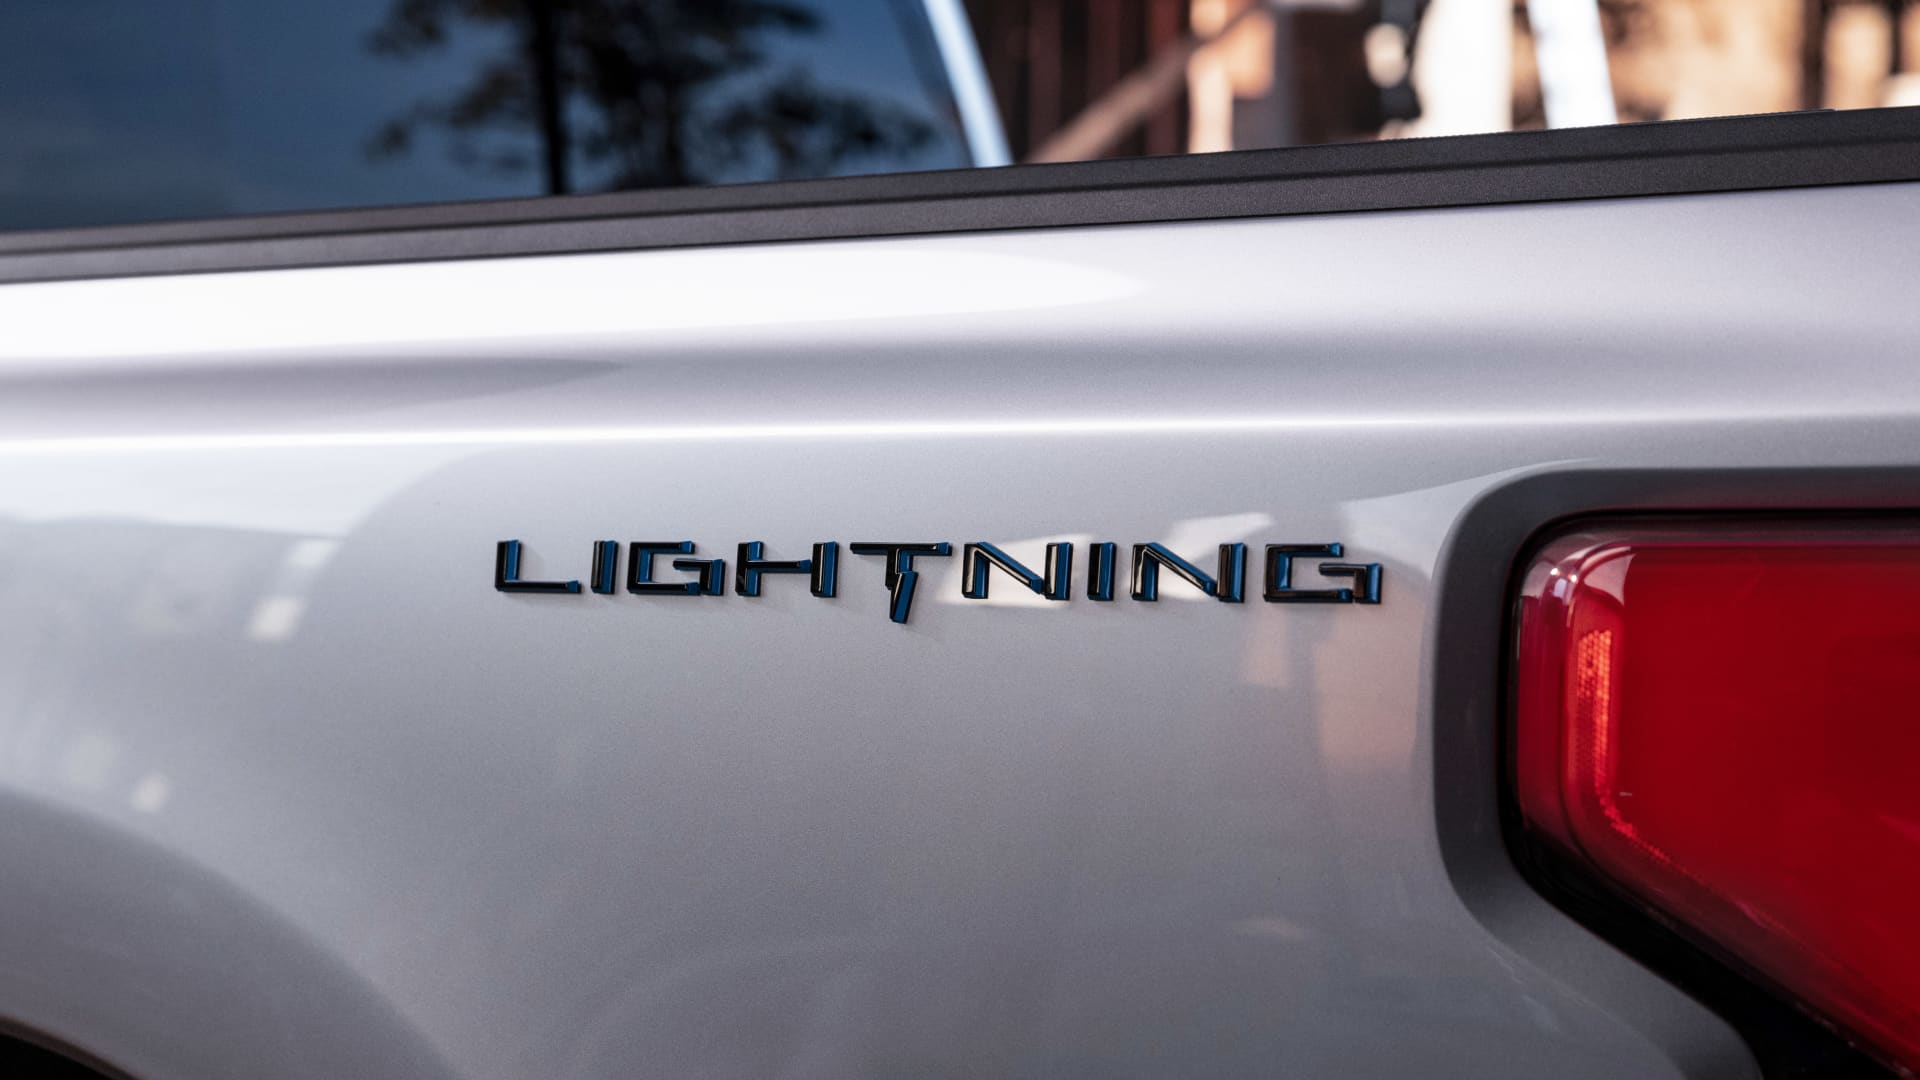 Ford's all-electric F-150 will be called Lightning. The all-new F-150 Lightning will be revealed May 19 at Ford World Headquarters in Dearborn and livestreamed.